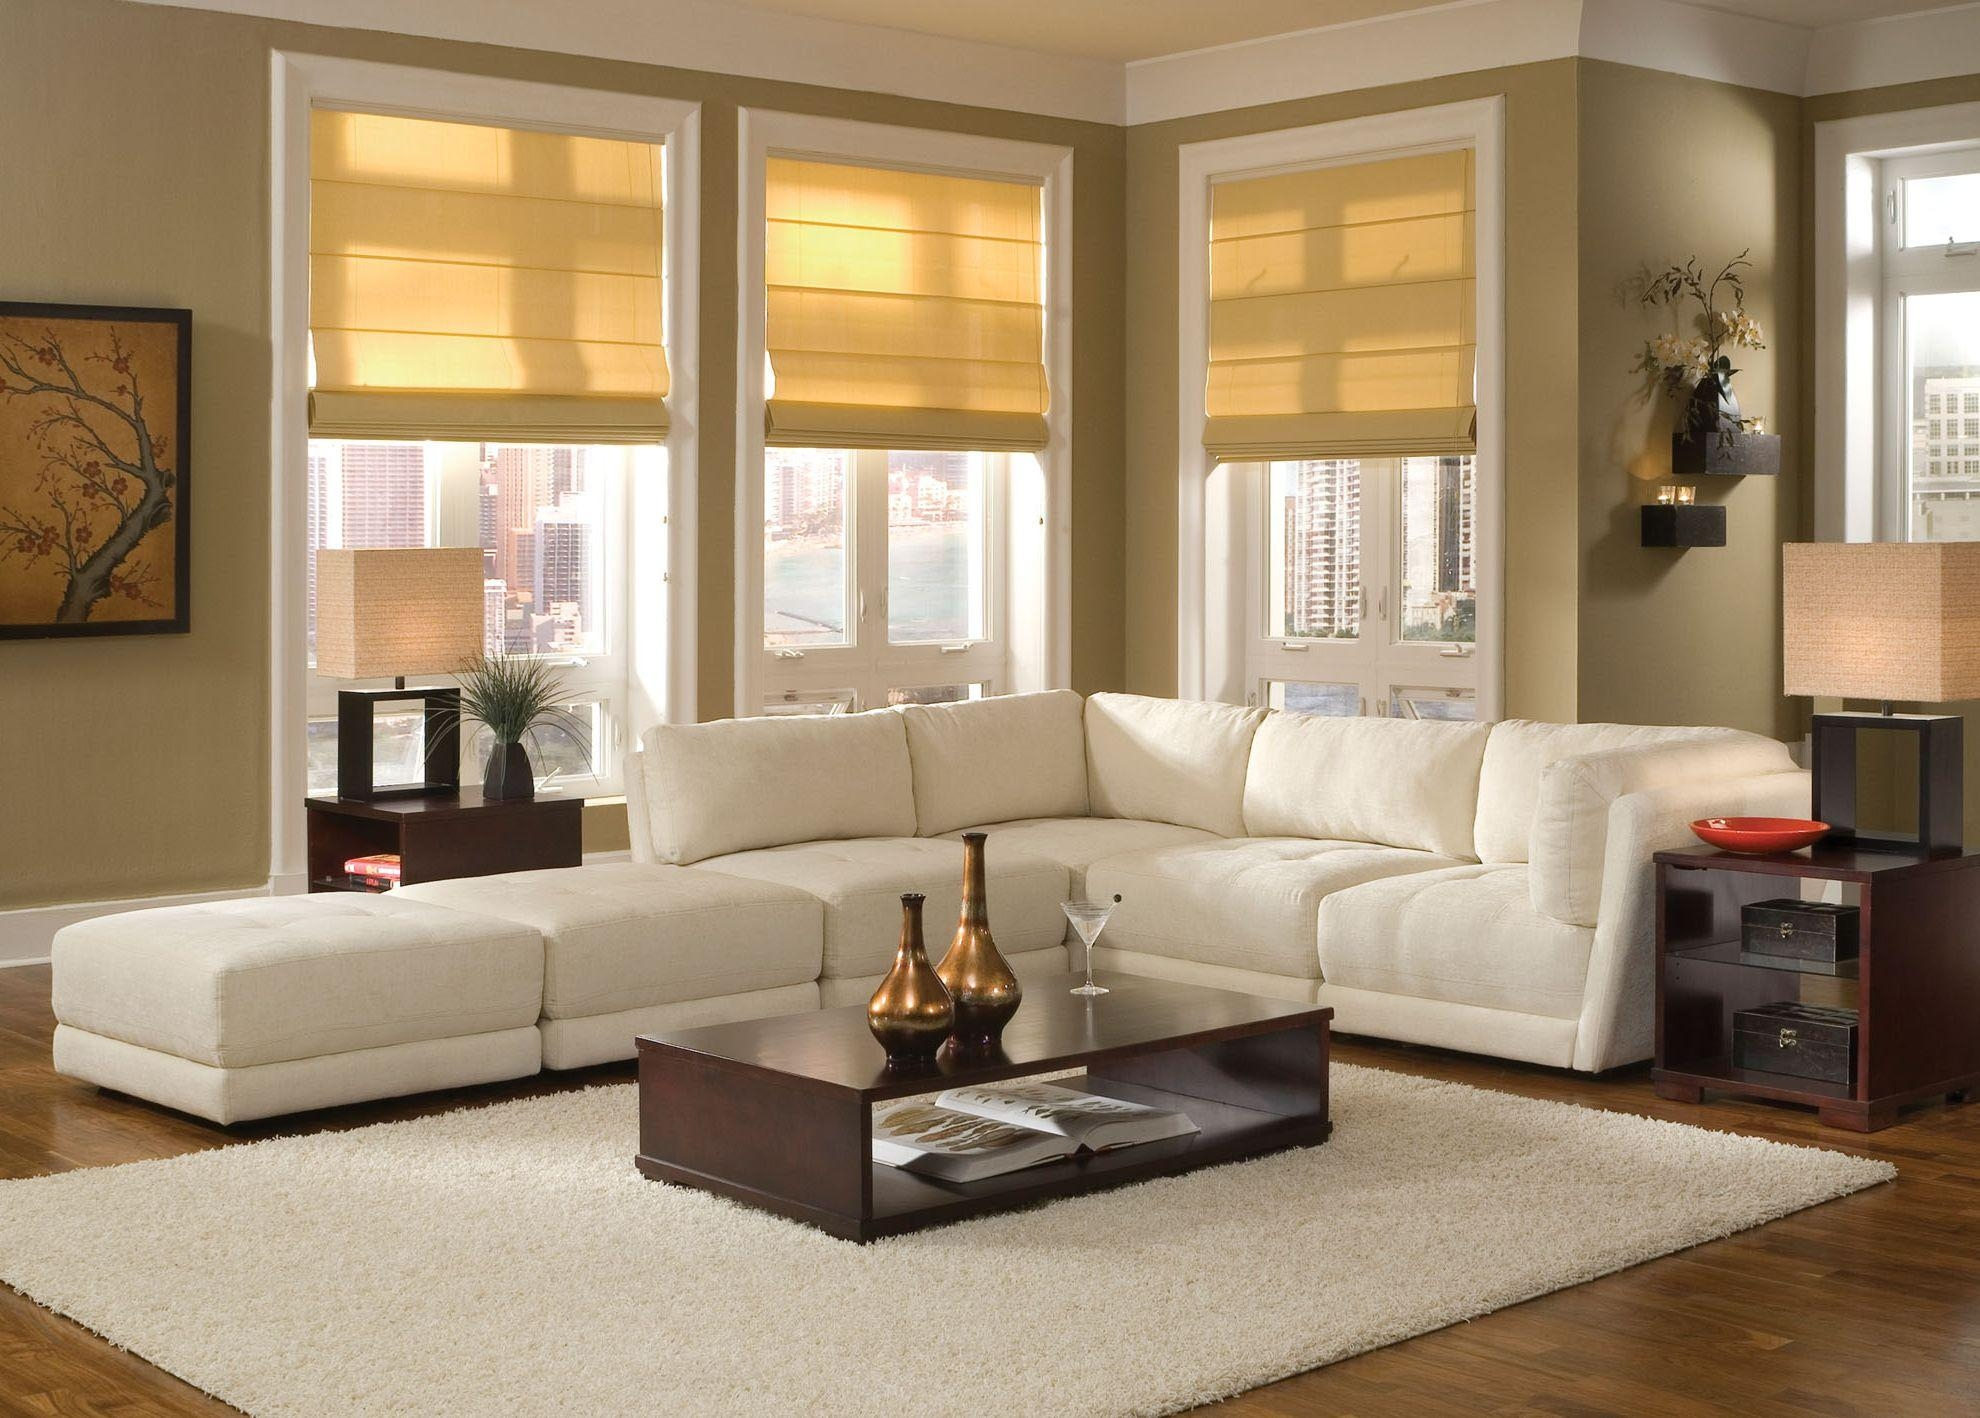 Cool Sectional Couches Unique Sectional Sofas, Unique Sectional Within Sectional Sofa Ideas (Image 10 of 20)